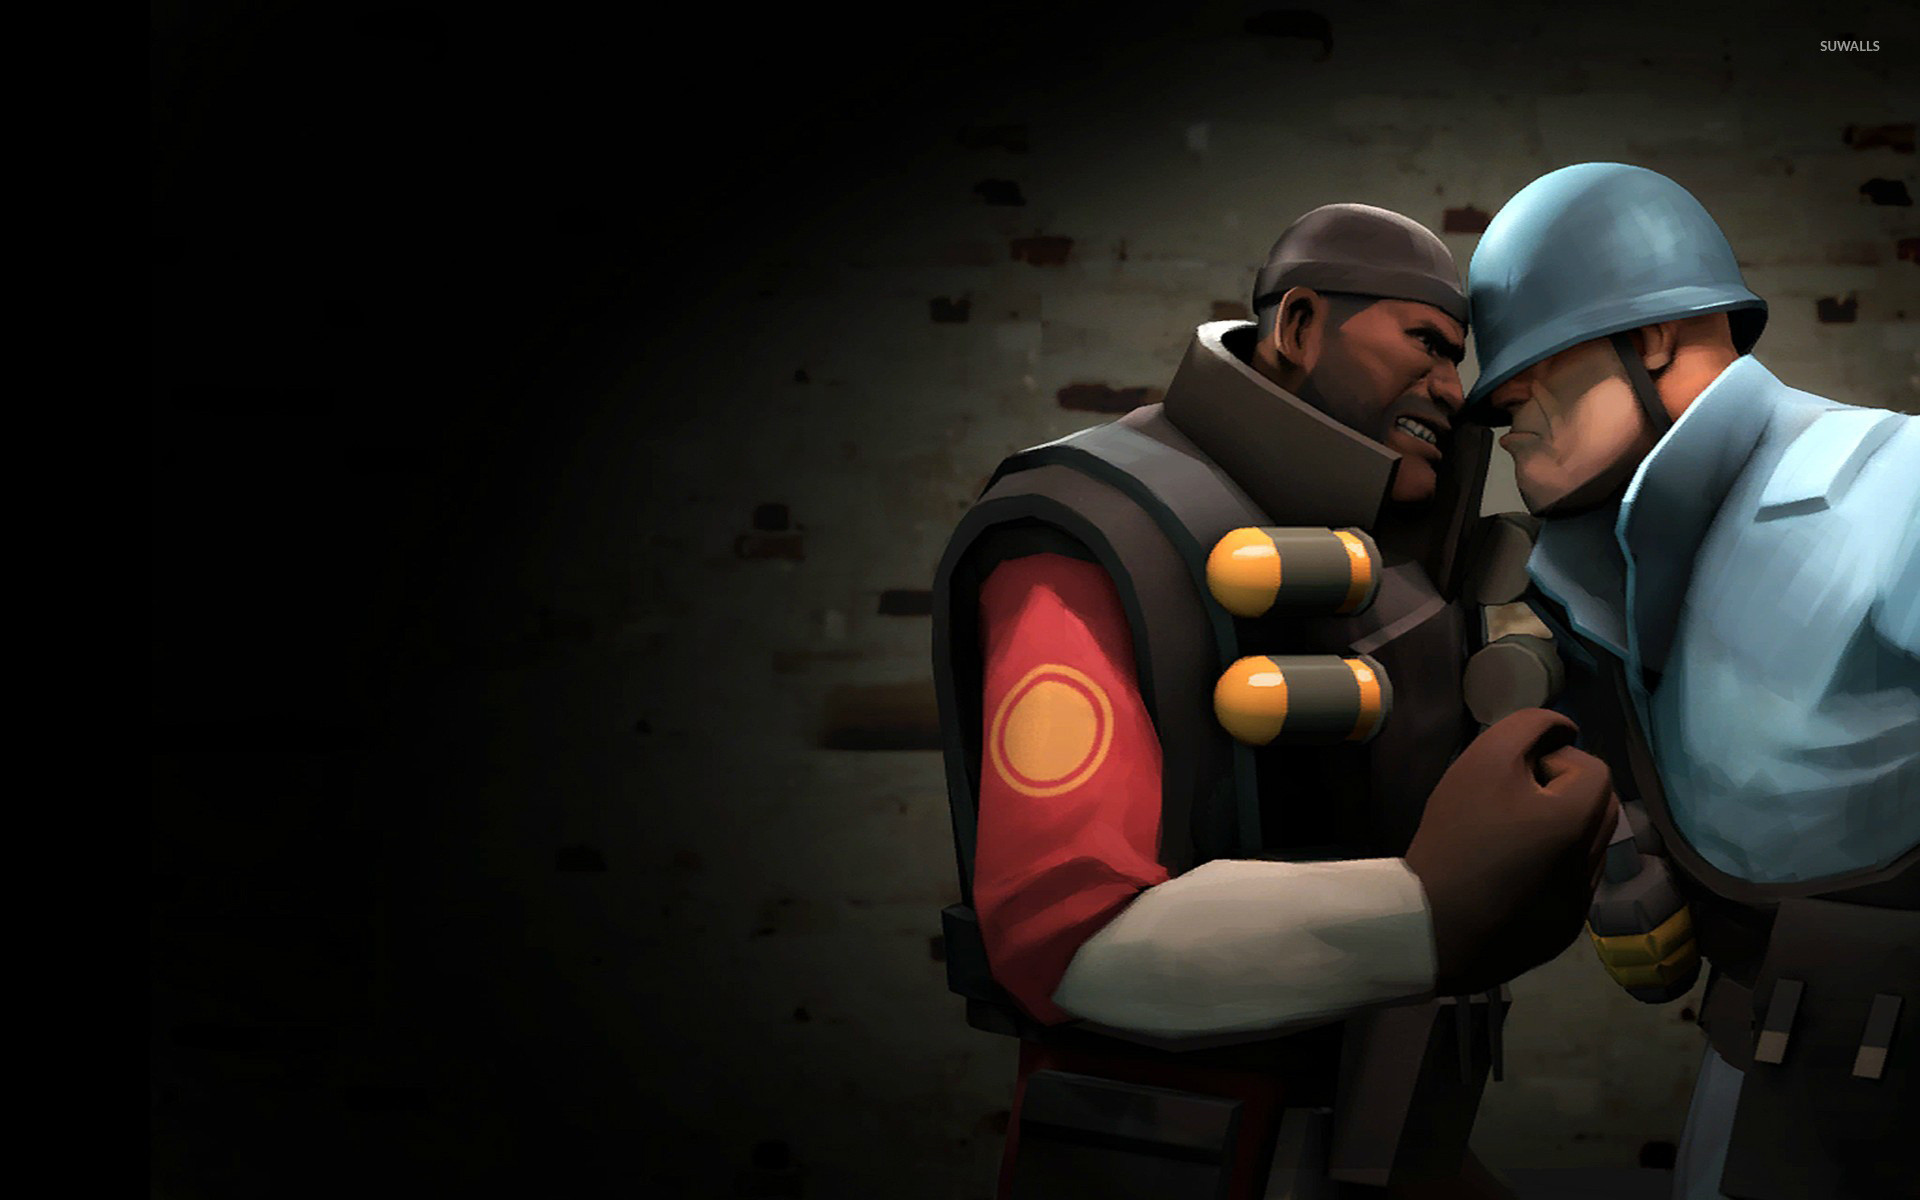 1920x1200 TF2 Demoman vs Soldier wallpaper - Game wallpapers - #15105